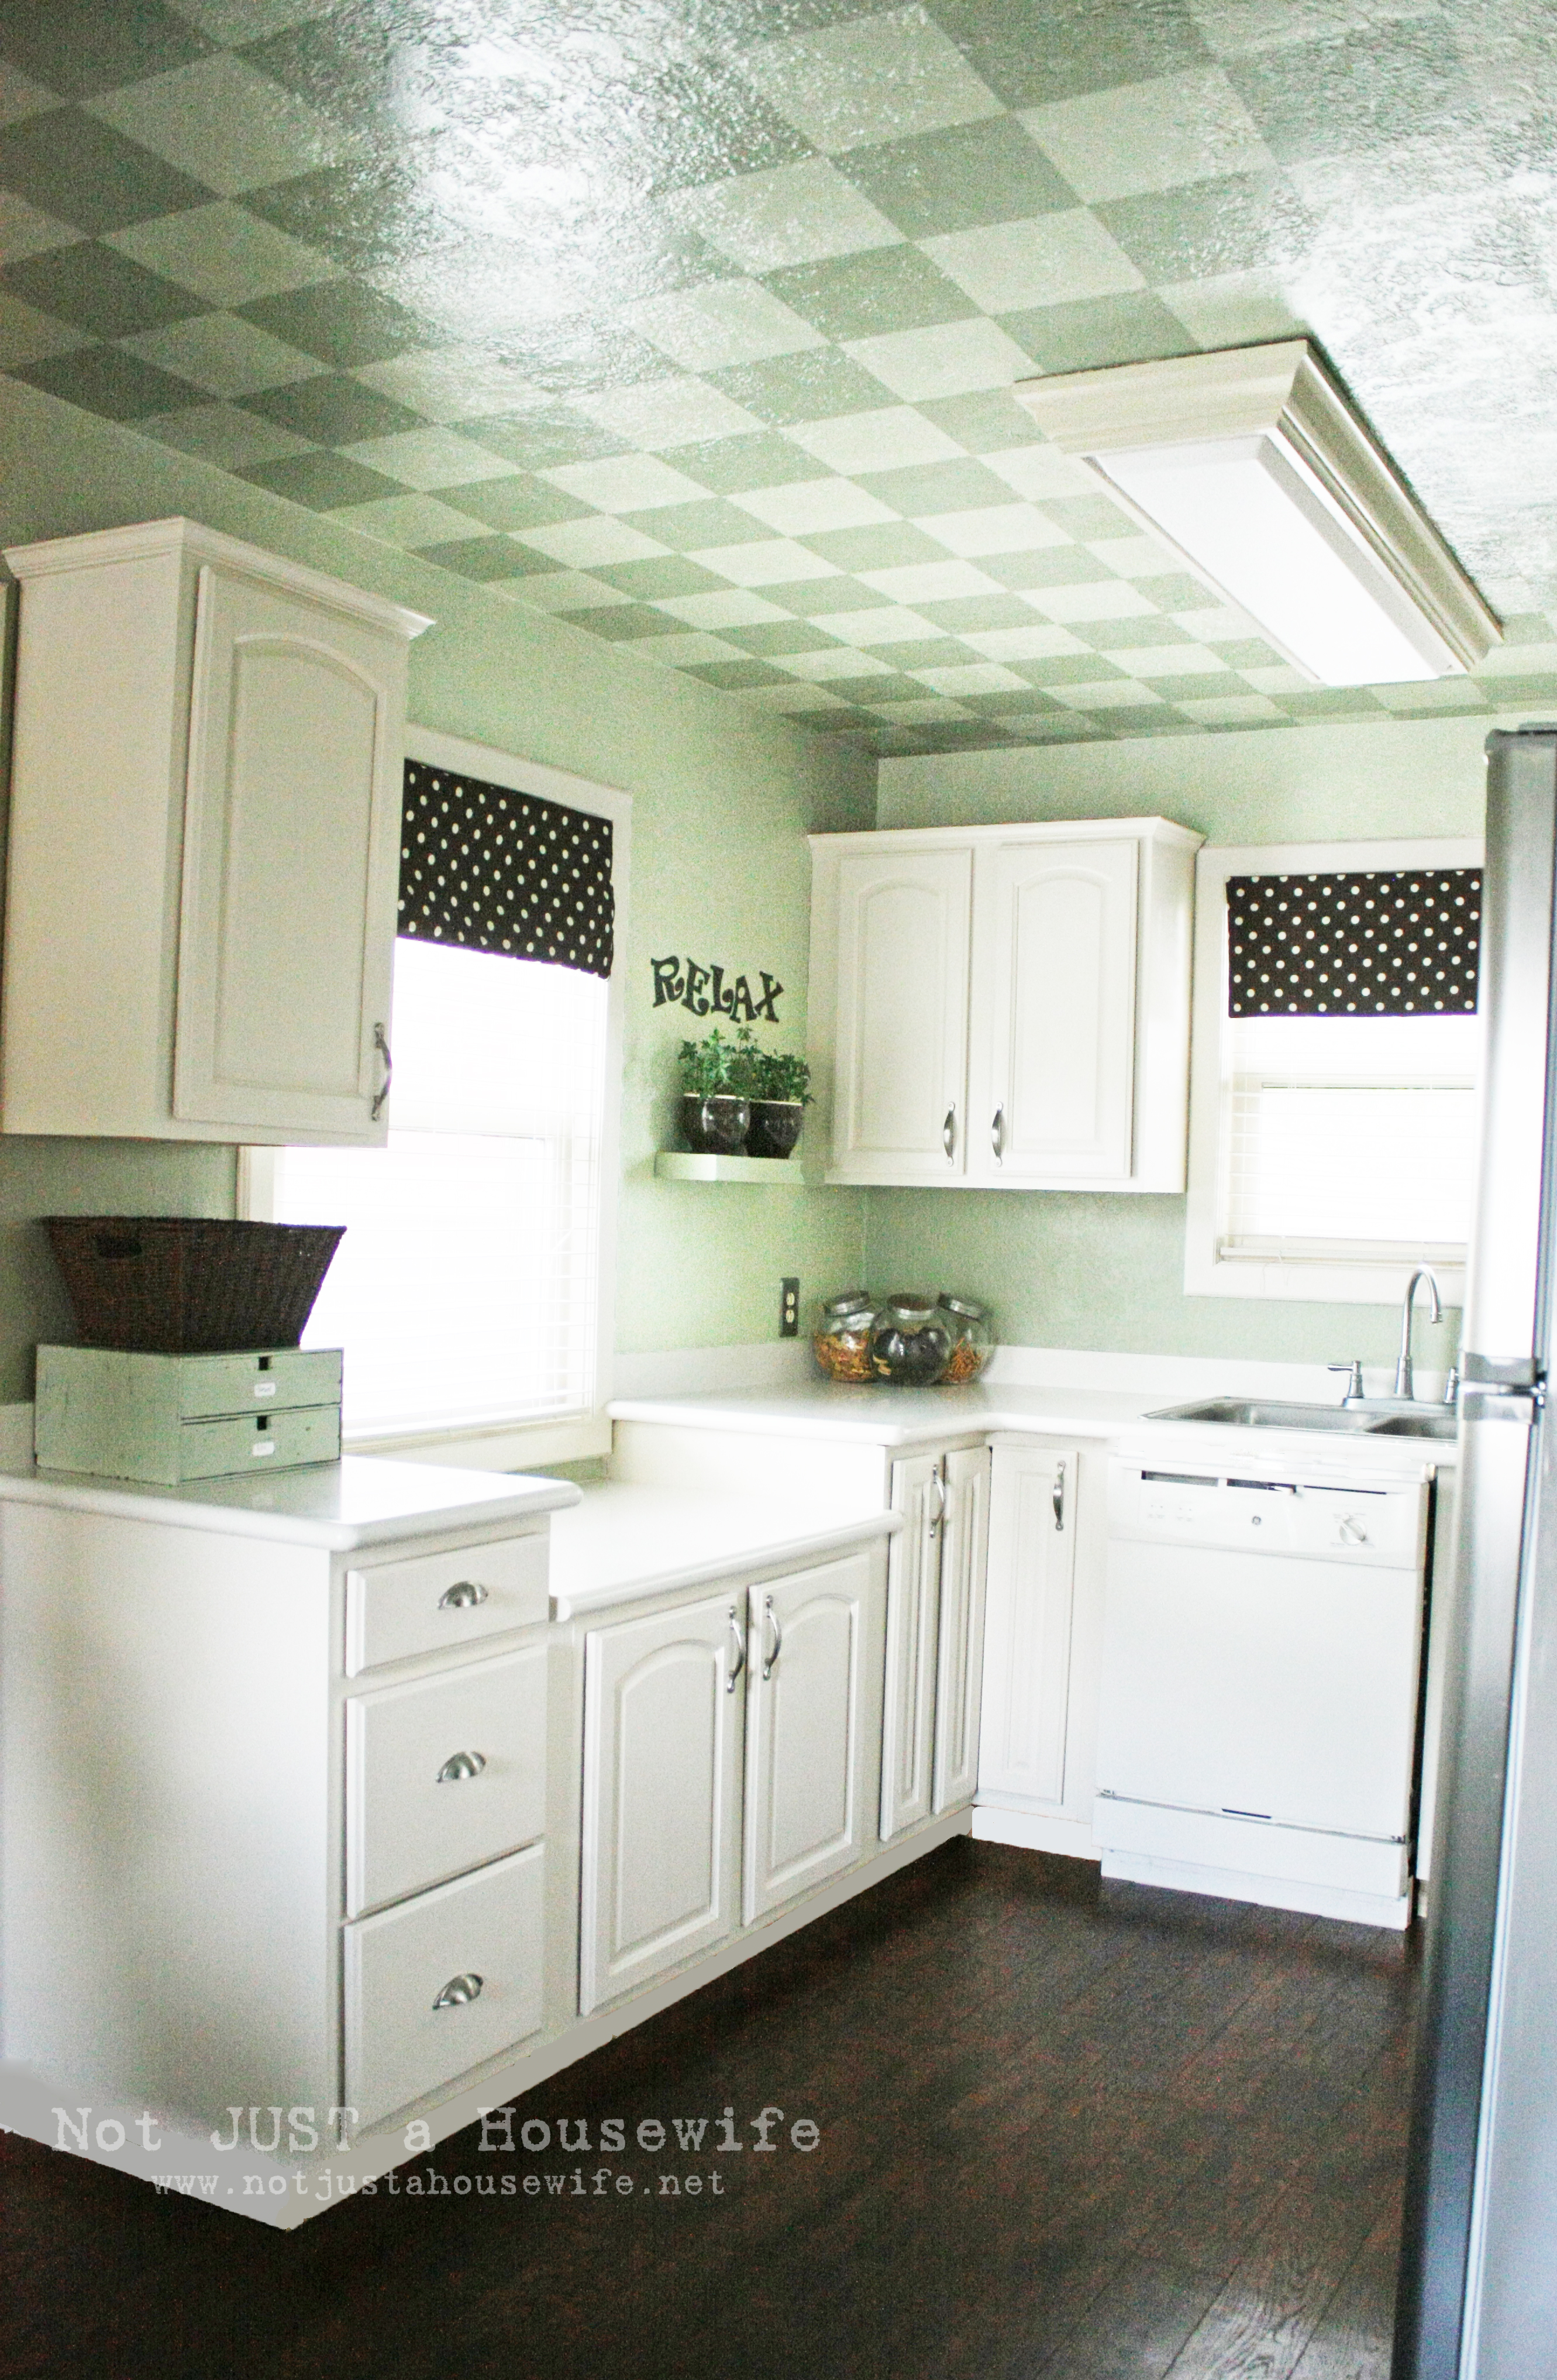 French country kitchen not just a housewife for Kitchen cabinets not wood